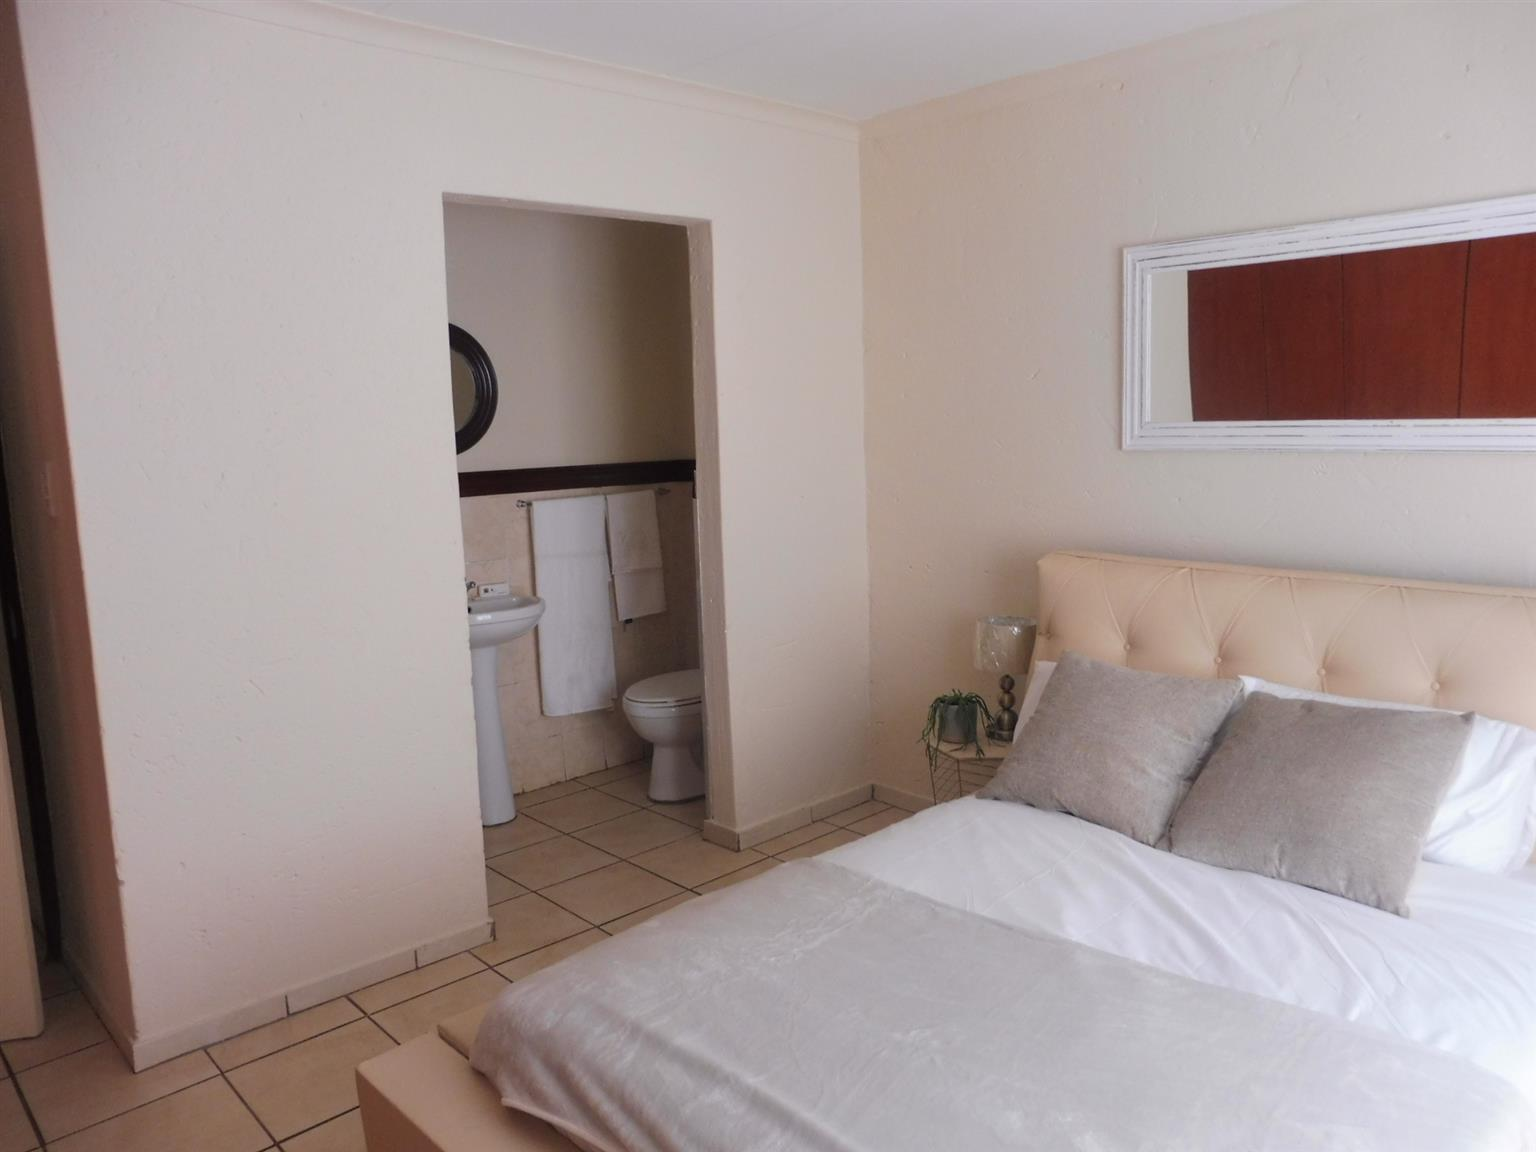 2 Bedroom, 2 Bathroom, Lock-up Garage, Theresapark